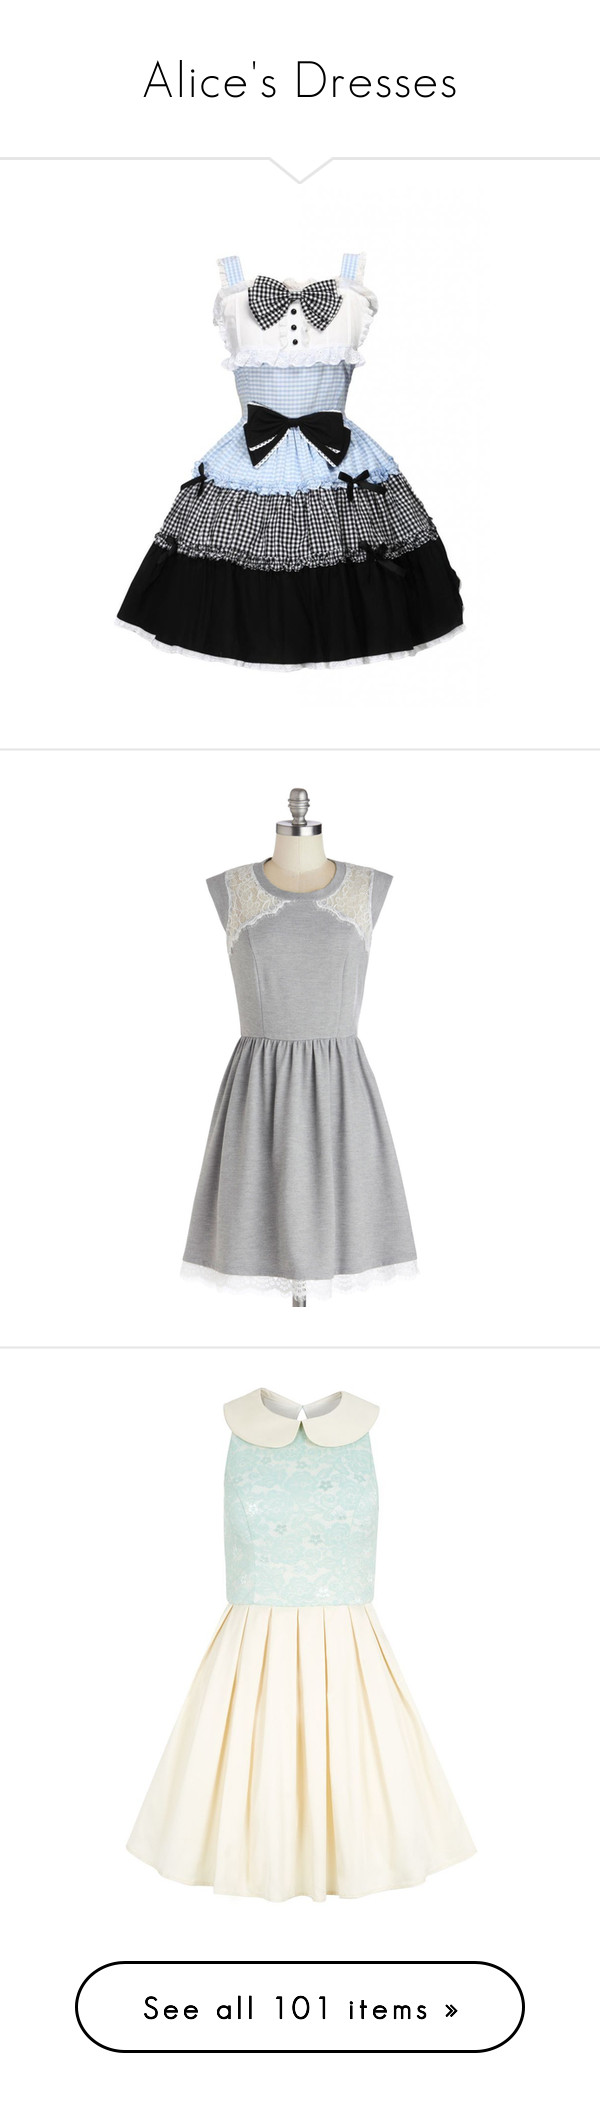 """Alice's Dresses"" by disneydressing ❤ liked on Polyvore featuring dresses, lolita, modcloth, grey, apparel, fashion dress, multi color dress, mid length dresses, lace dress and grey dress"